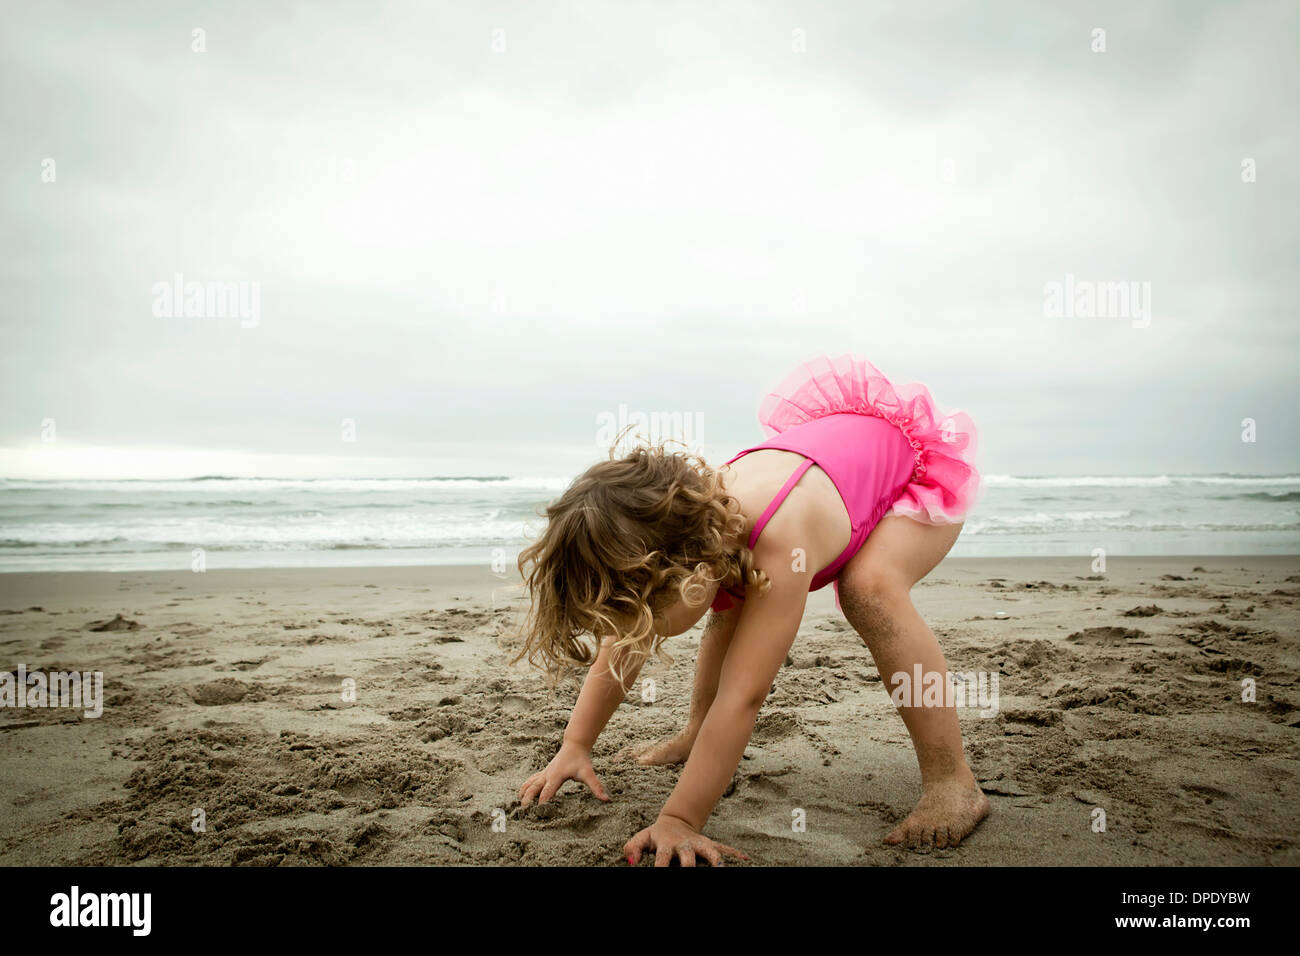 Female toddler playing with sand - Stock Image